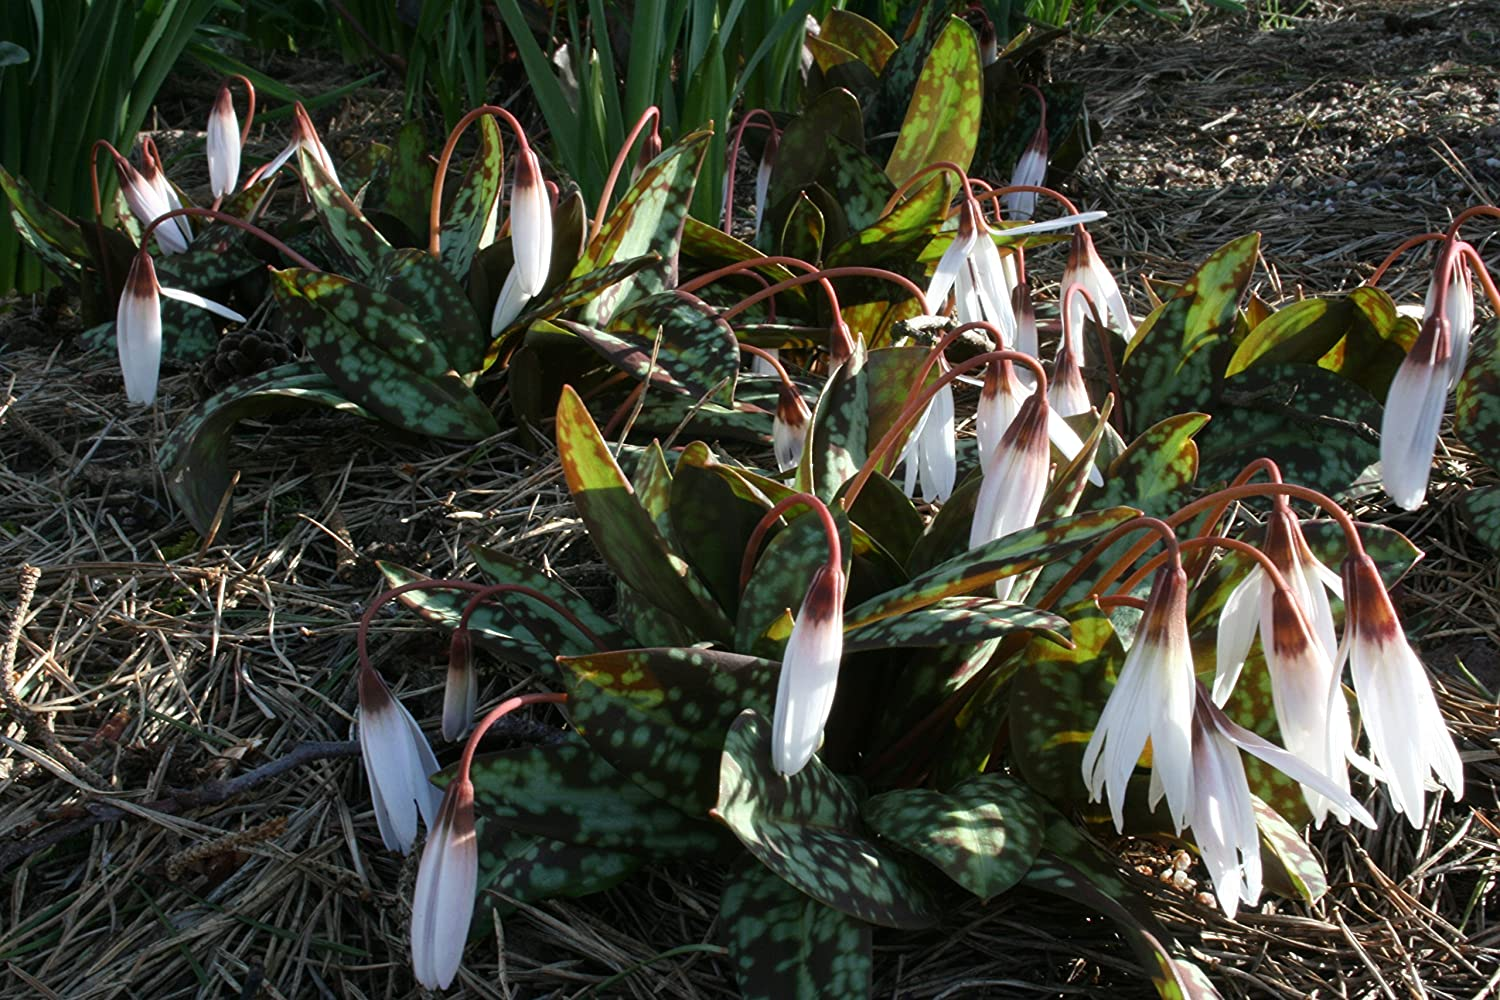 a garden tested Erythronium dens-canis Snowflake hardy perennial plant cultivar supplied in a half litre pot